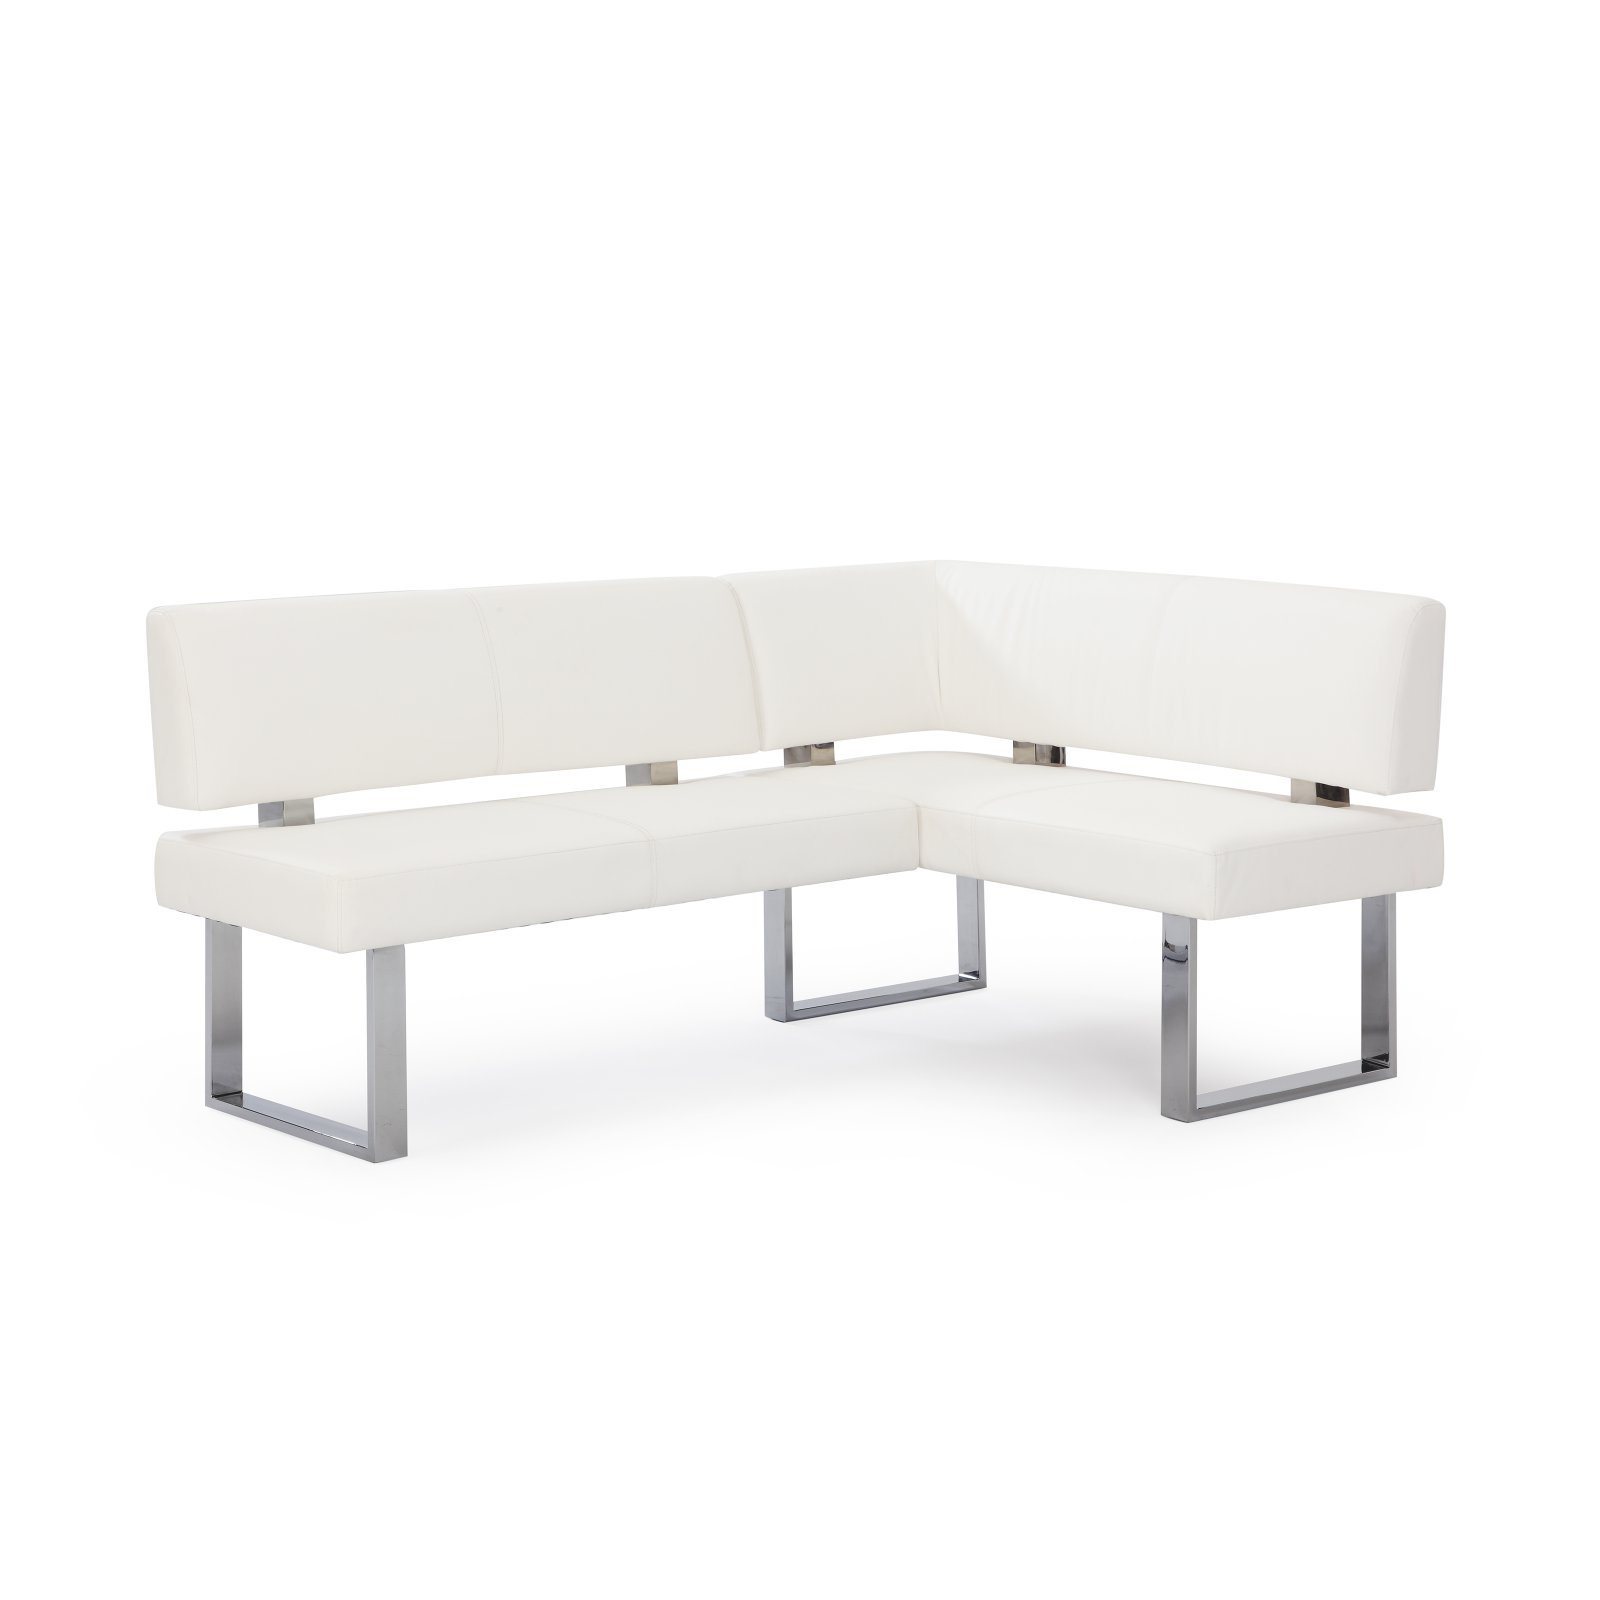 Chintaly Linden L Shaped Dining Bench